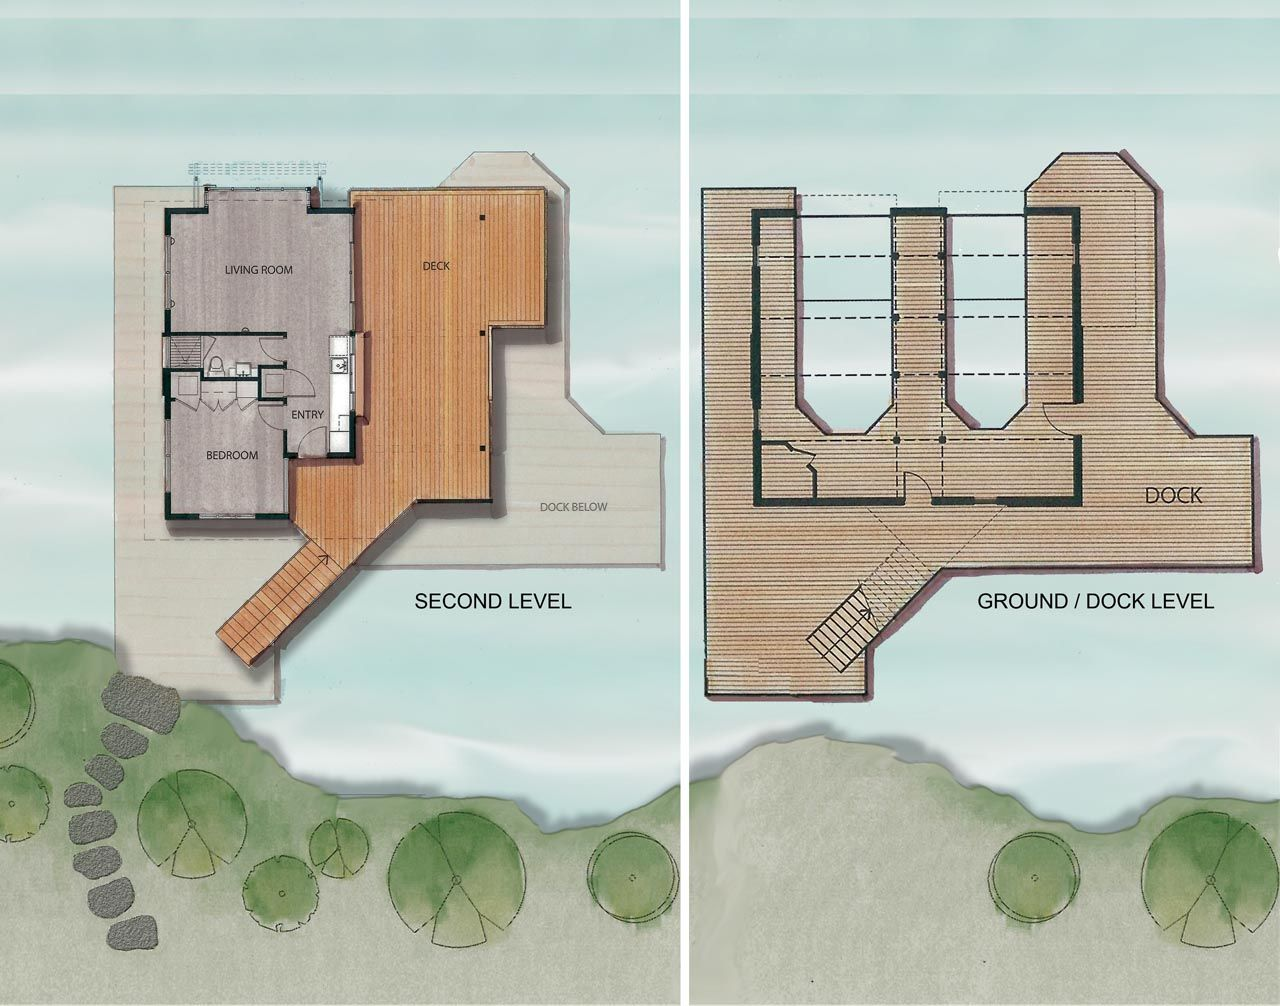 Boathouse Renovation And Extension In Muskoka Lakes Ontario House Plans With Pictures Boathouse Design House Boat